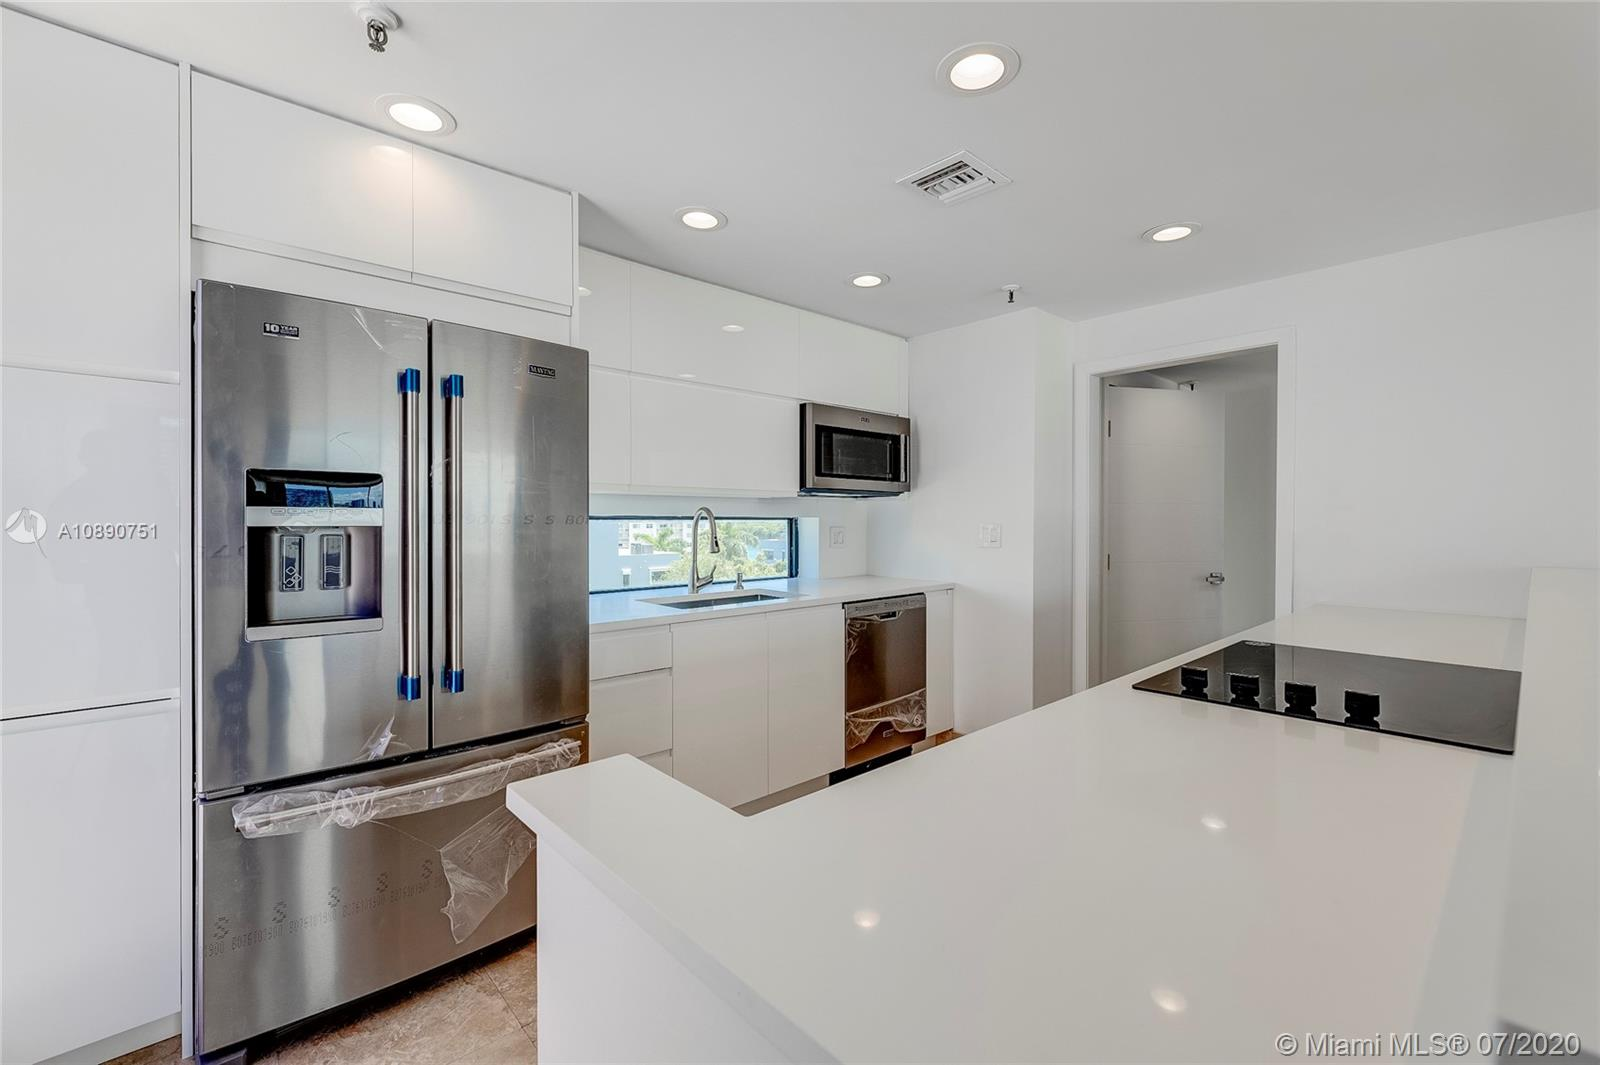 Photo of 425 Poinciana Island Drive #1444, Sunny Isles Beach, Florida, 33160 - Kitchen view from east terrace to hallway and powder room